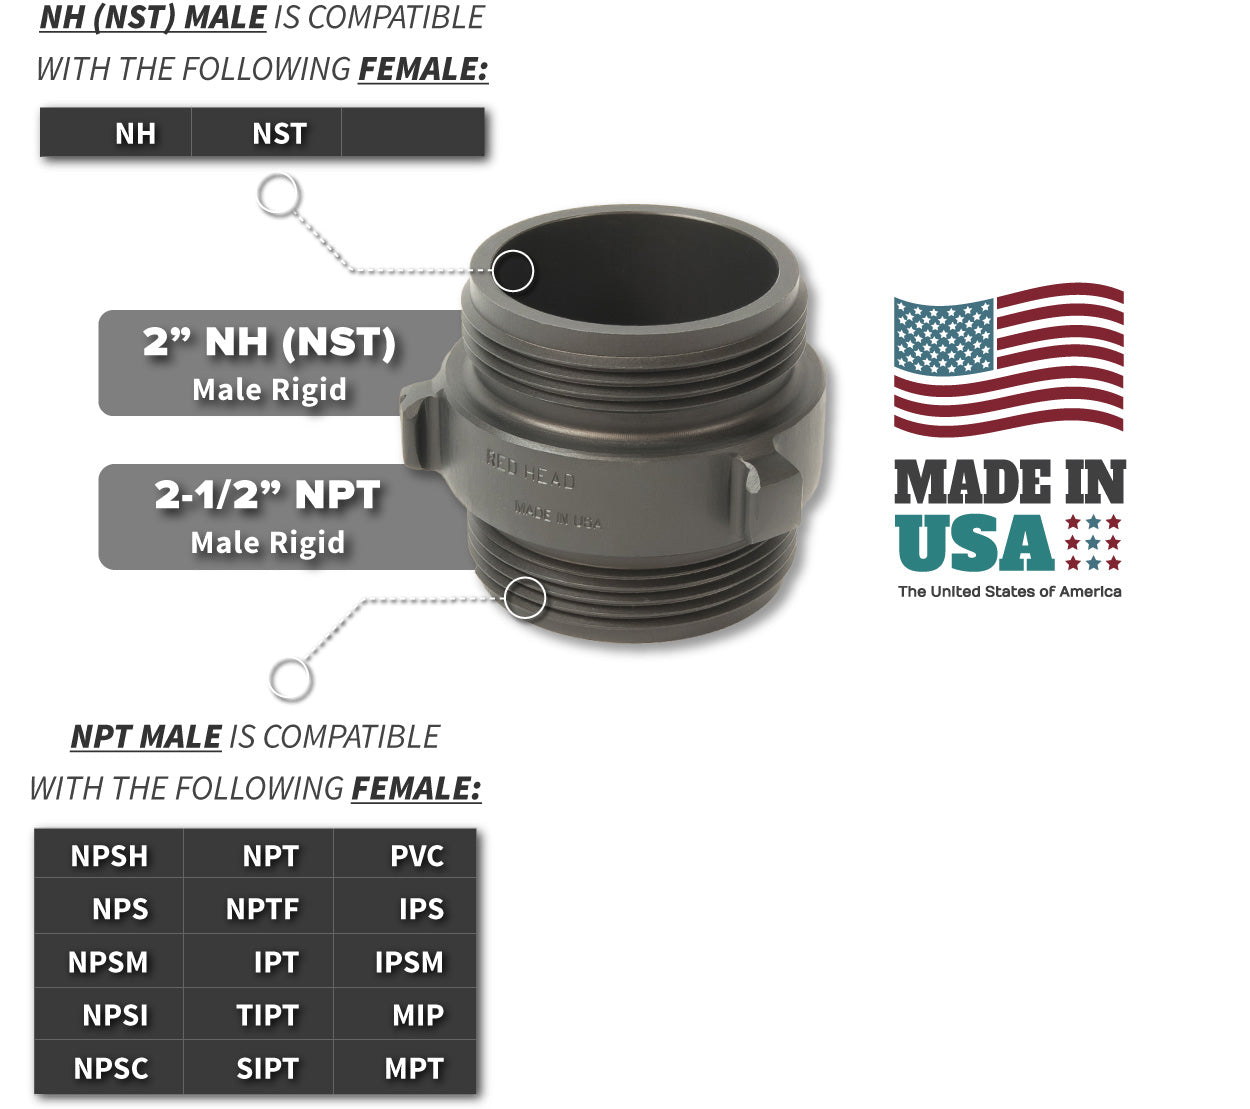 2 Inch NH-NST Male x 2.5 Inch NPT Male Compatibility Thread Chart